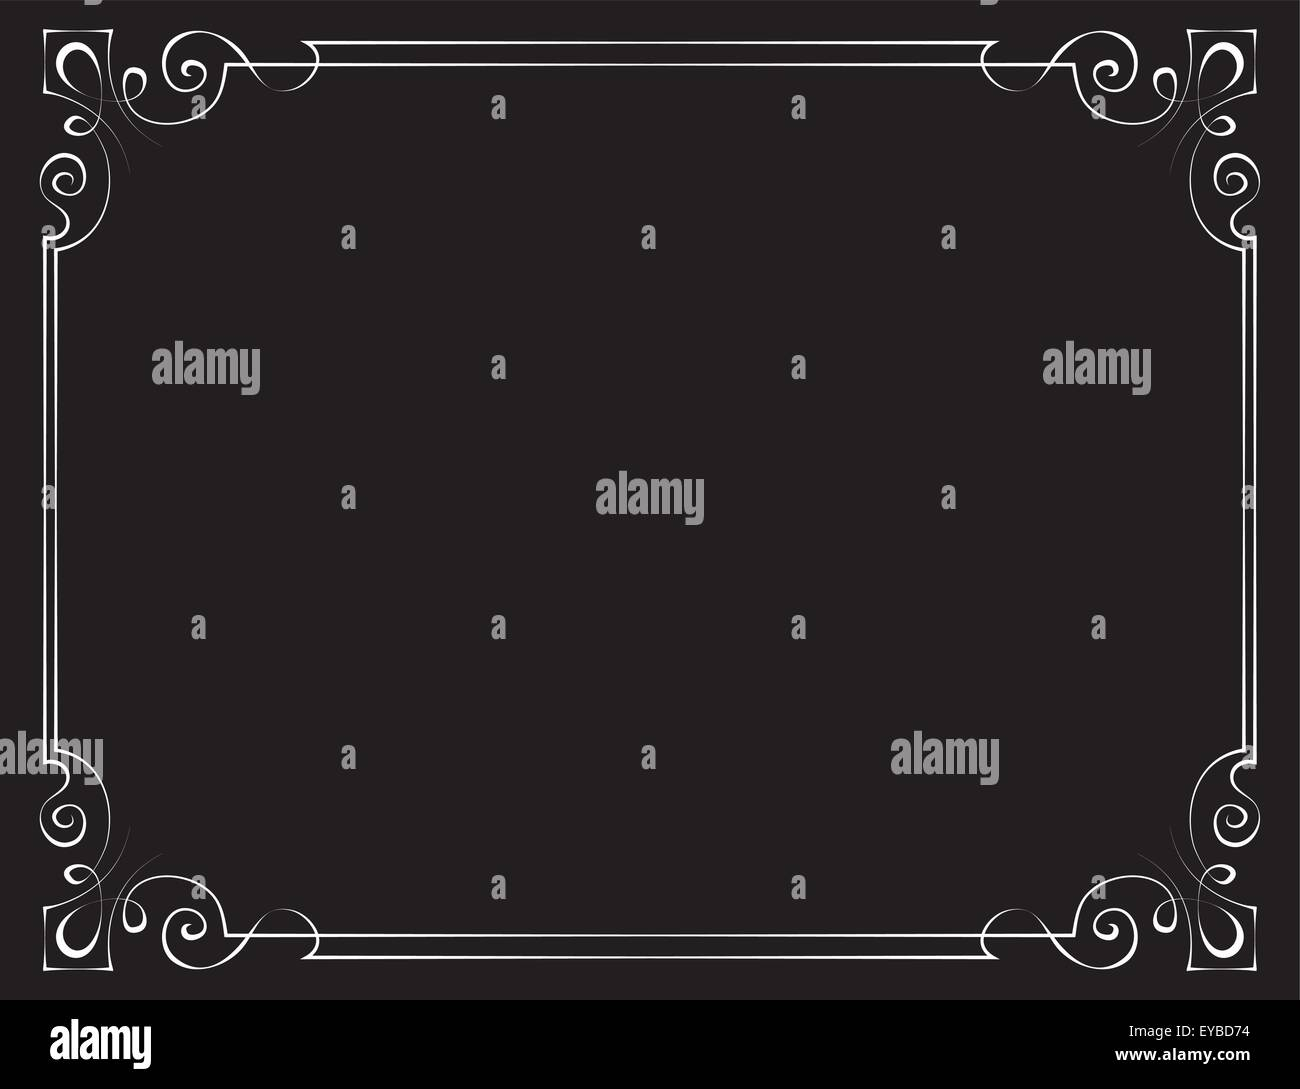 Vector vintage frame with patterned angles on a black background - Stock Image